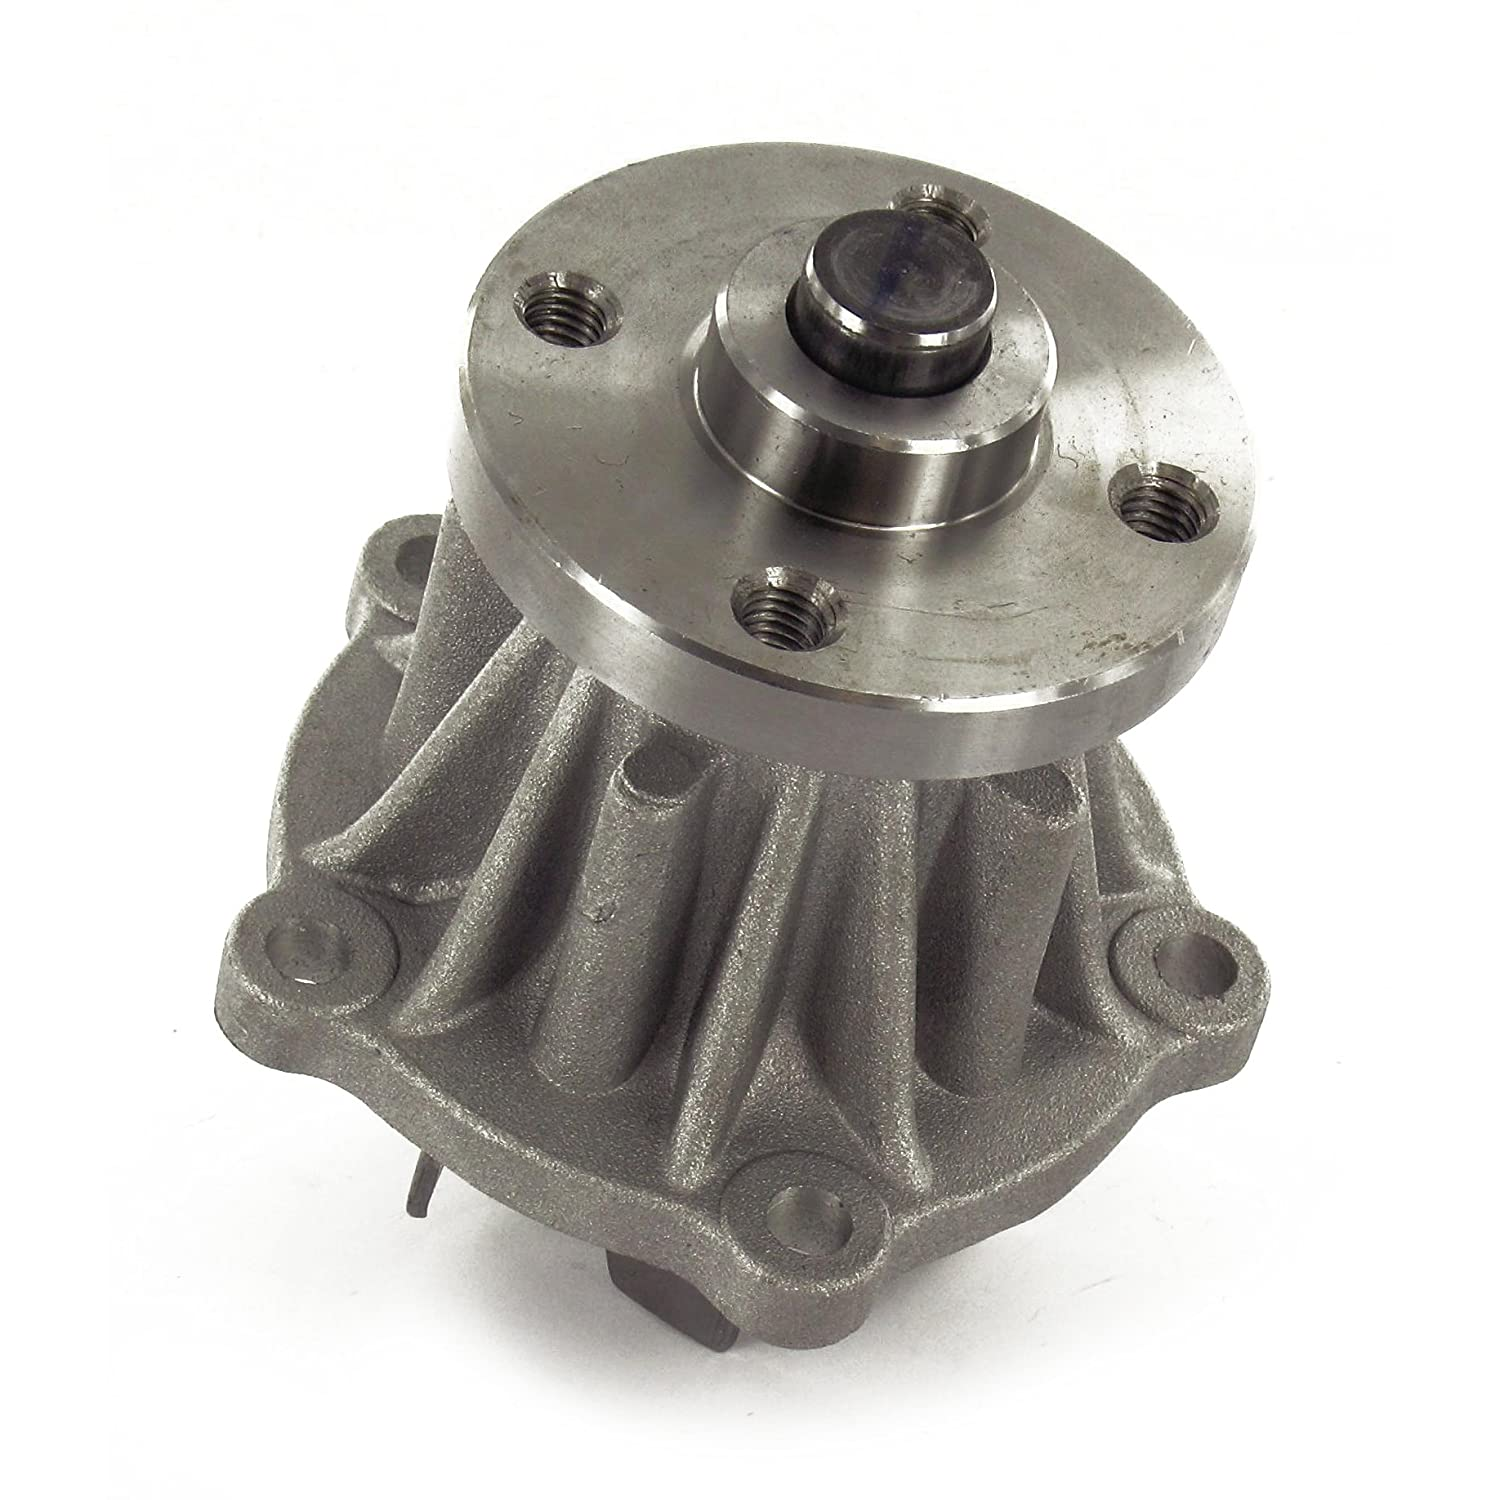 Toyota 16120-78151-71 Forklift Water Pump, For 4Y 5 and 6 Series Engine 020161207815171